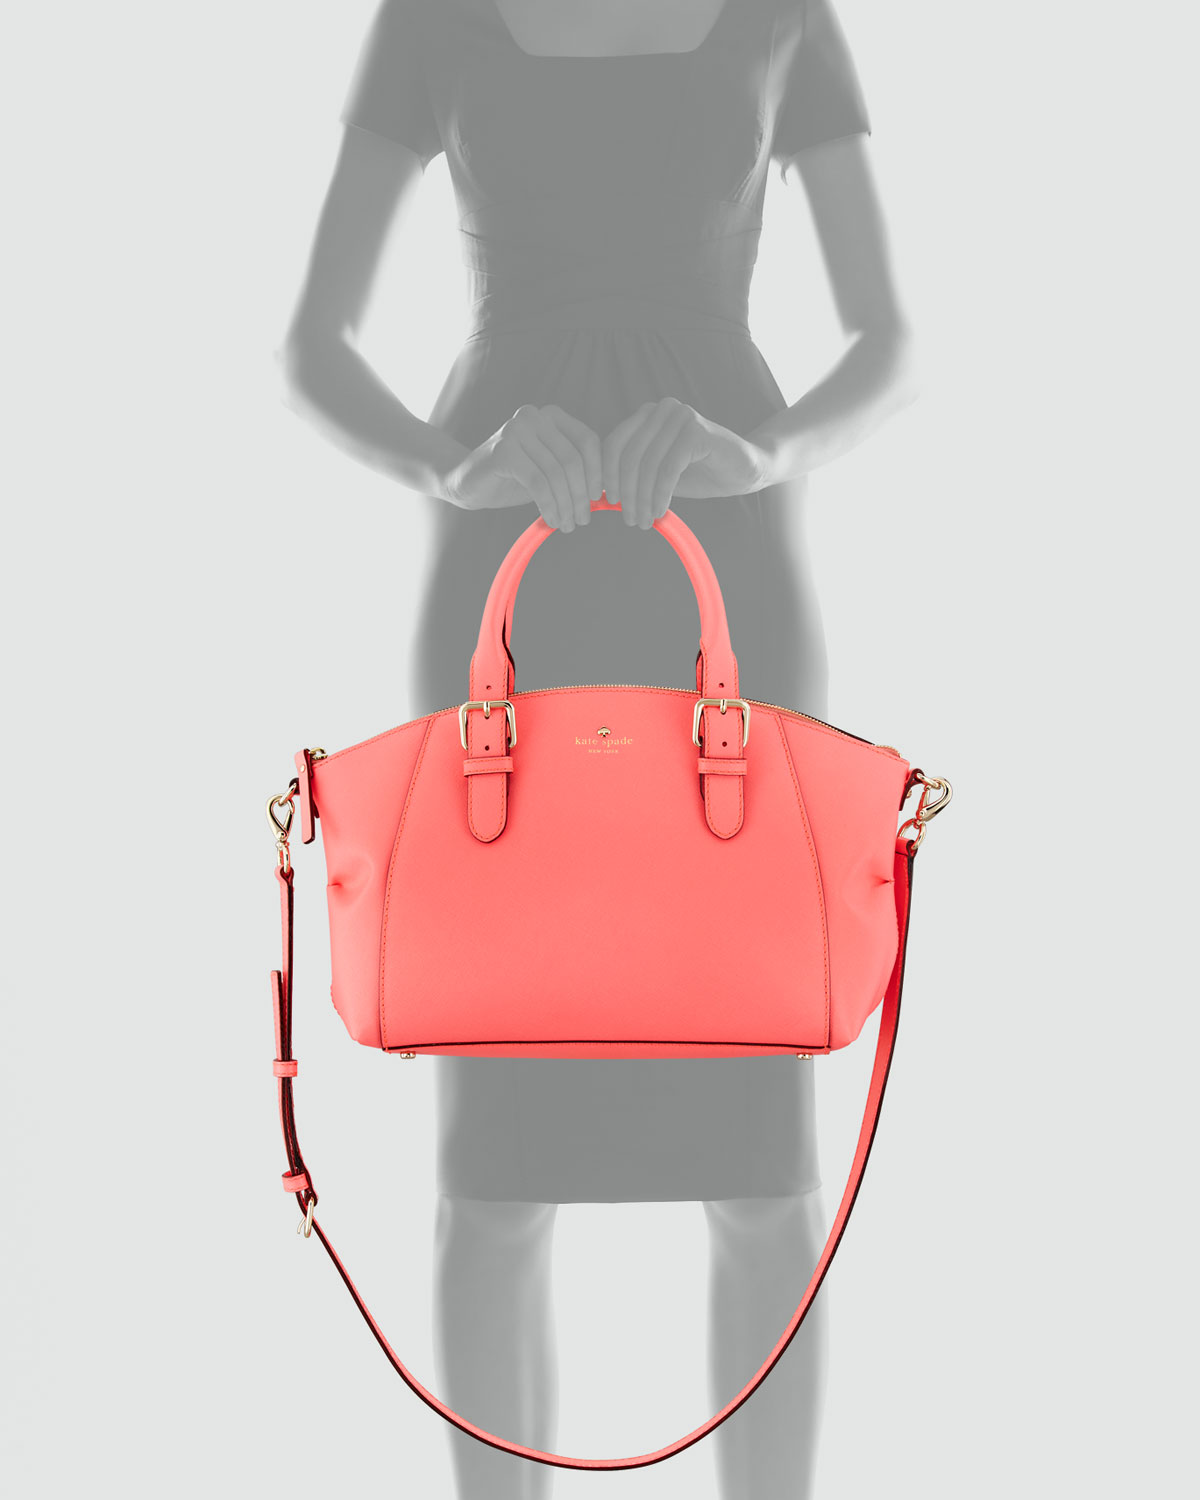 Lyst - Kate Spade Charlotte Street Small Sloan Tote Bag in Pink 00a8c3c880705